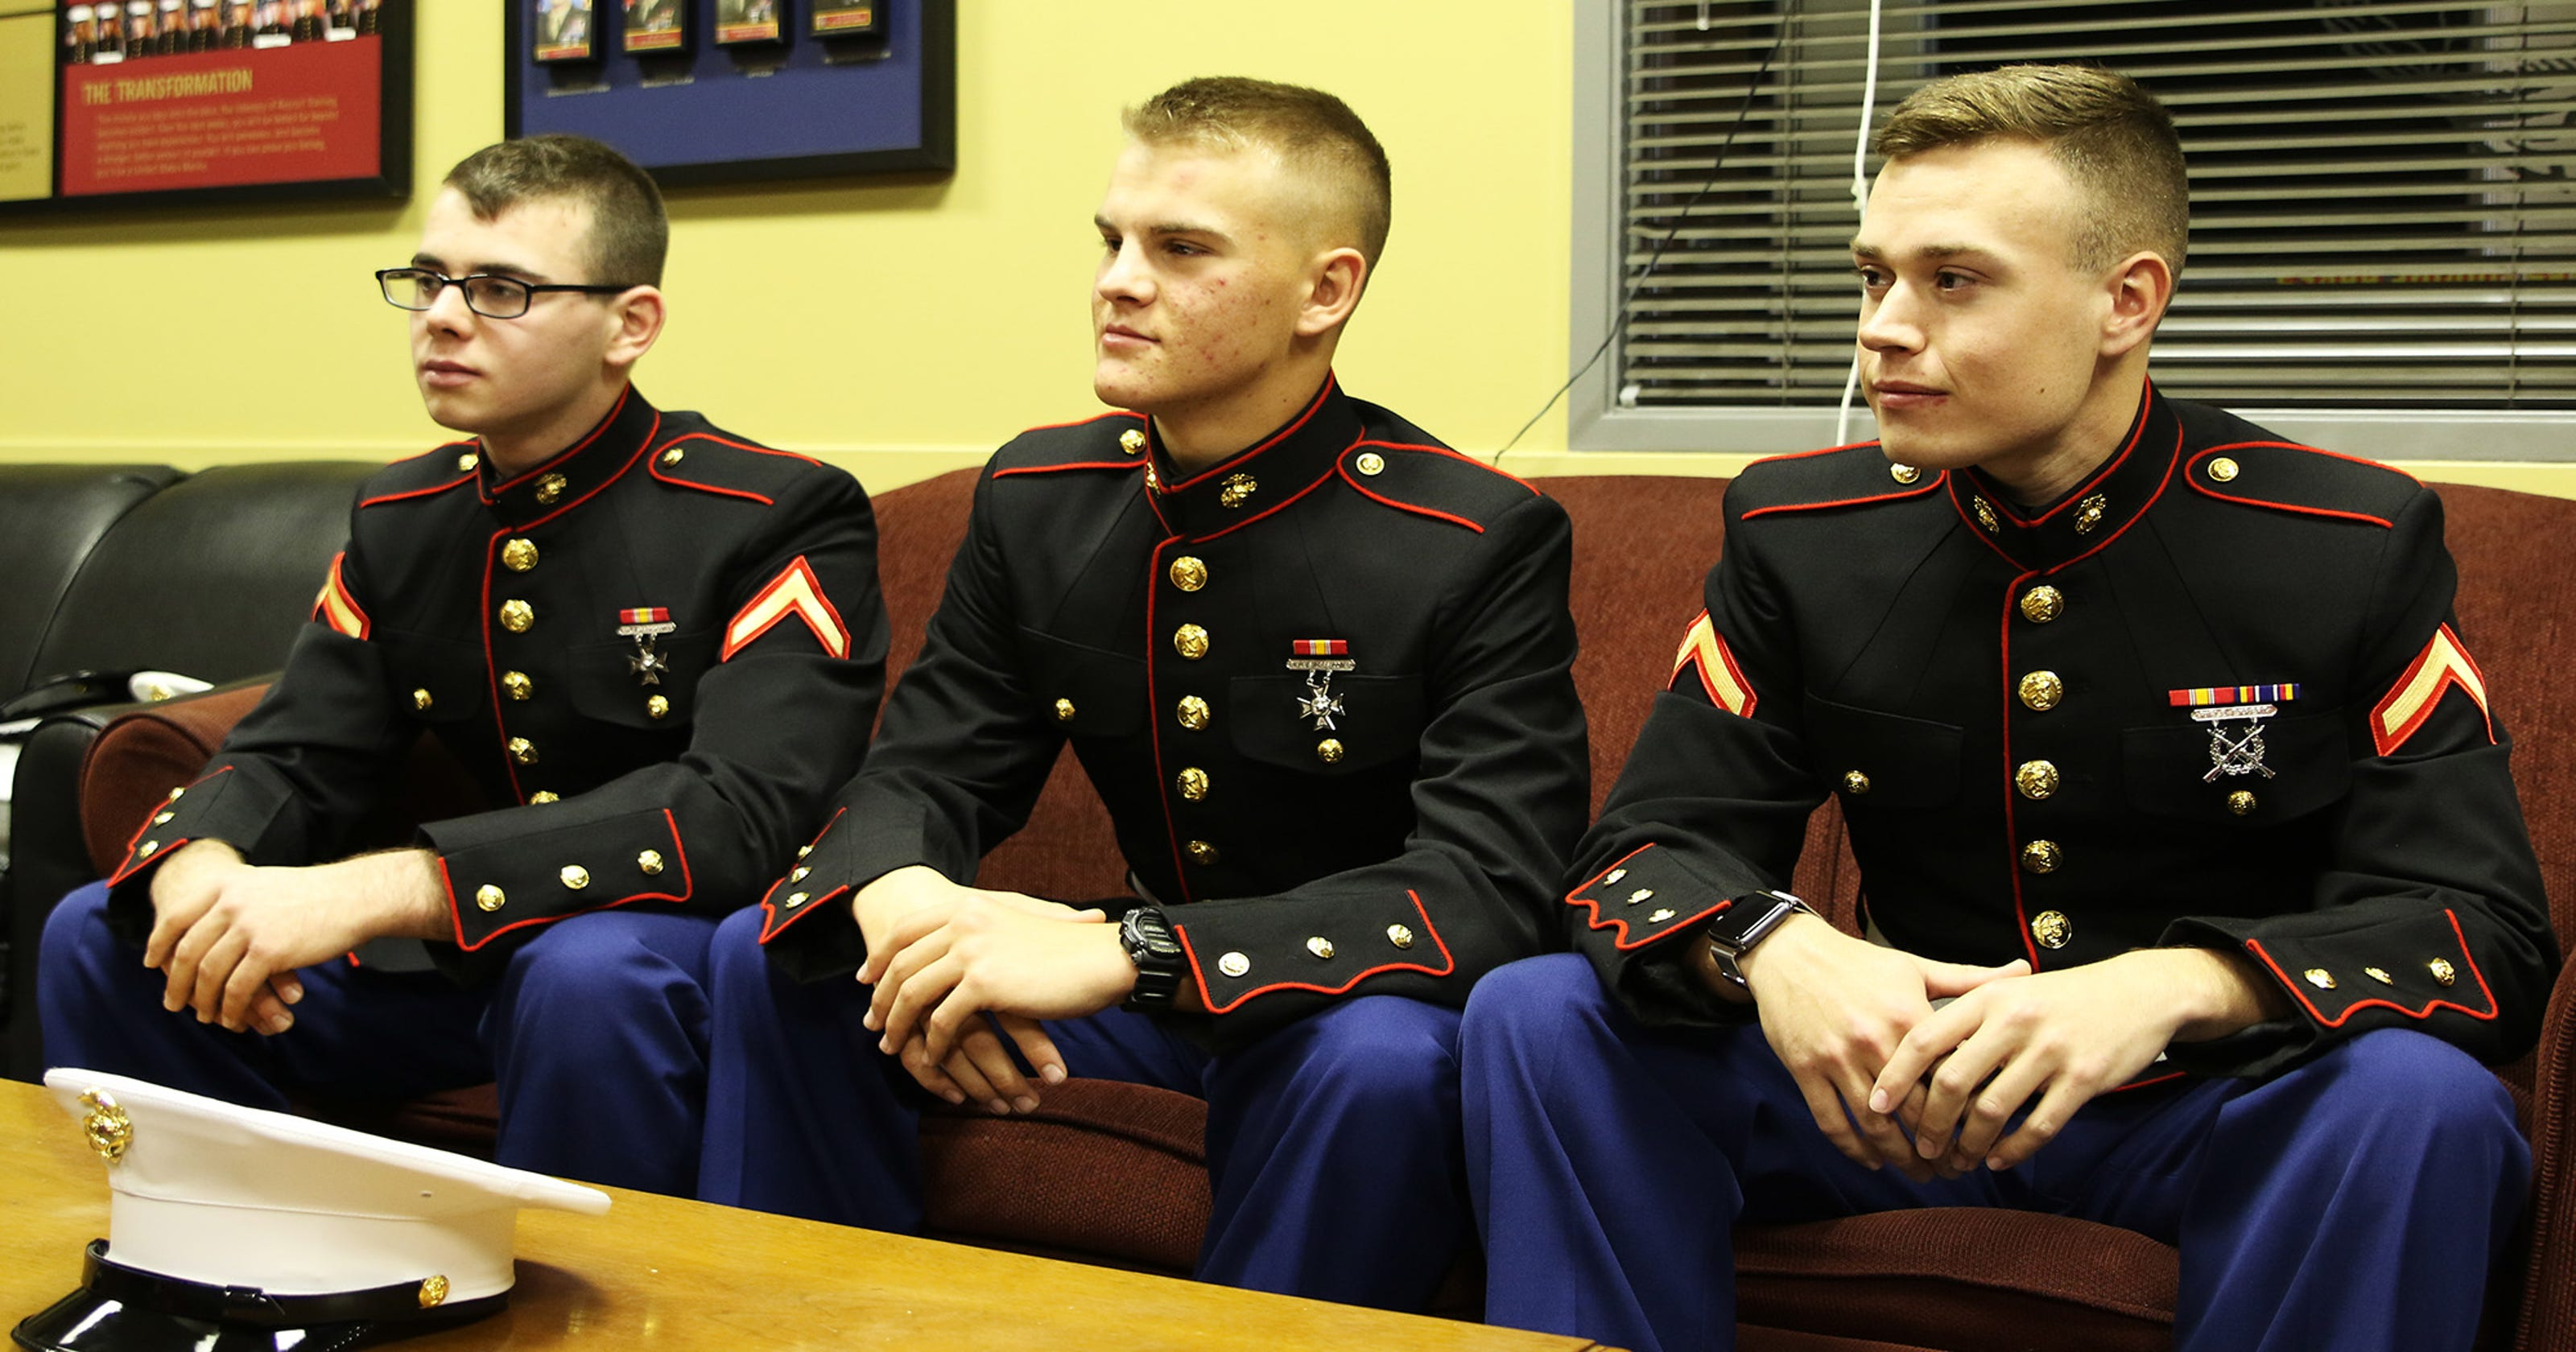 marines in dress blues thwart suspected phone thieves